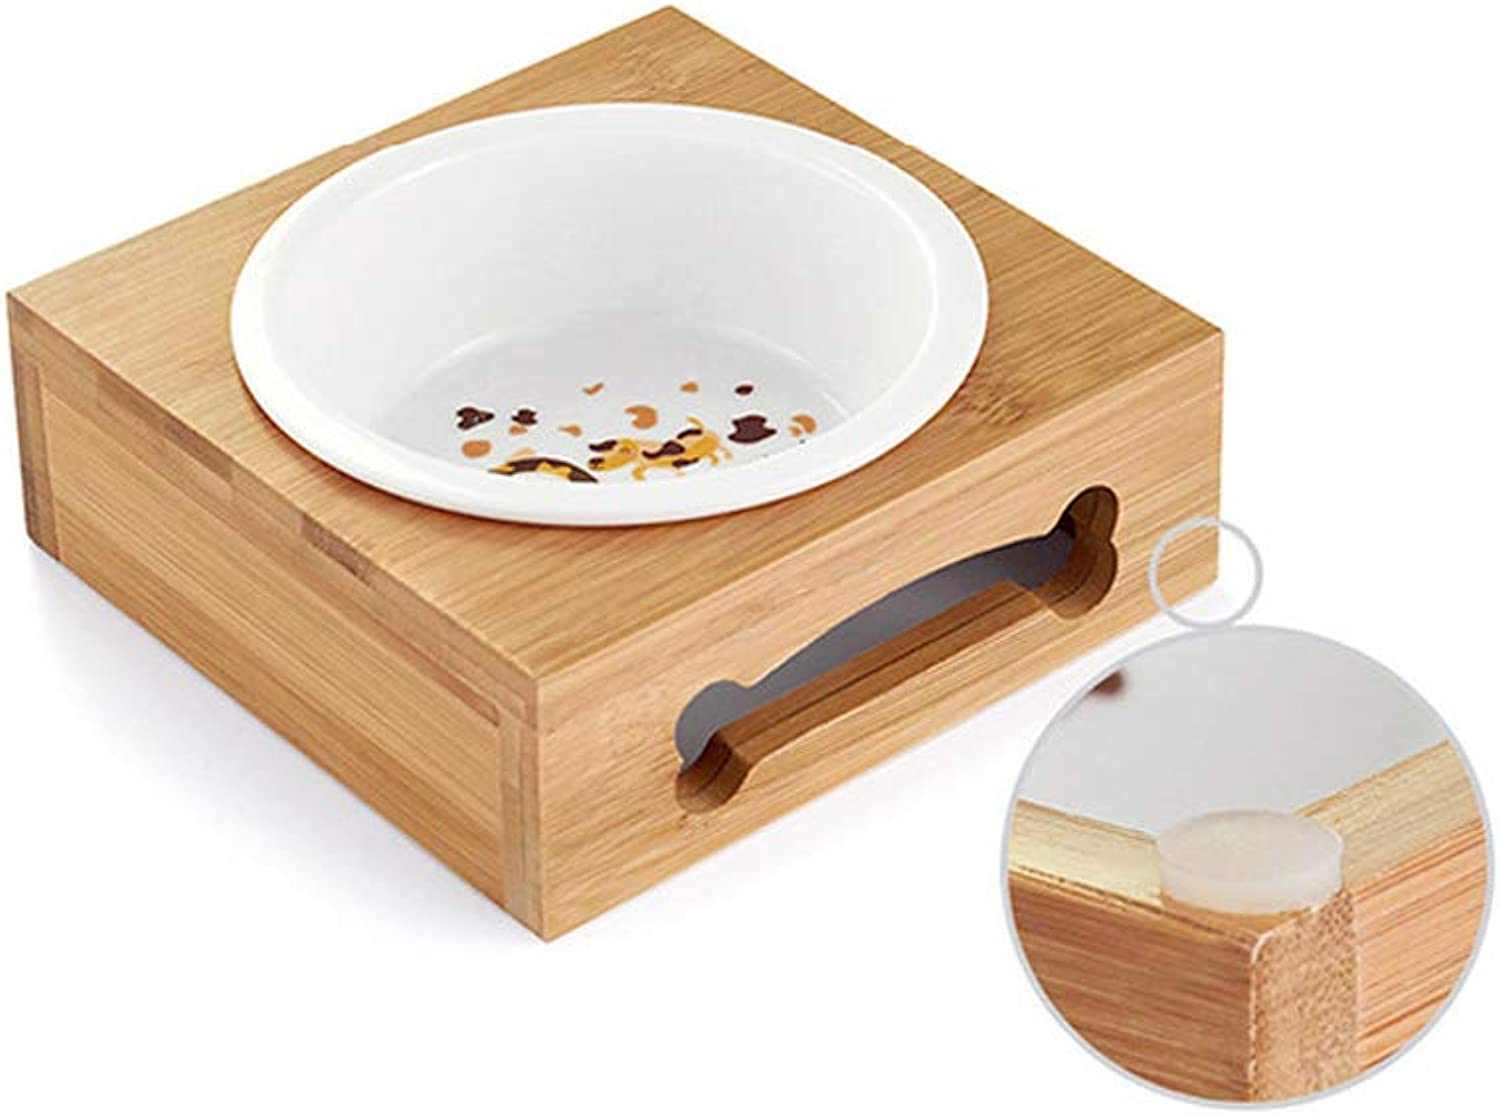 LLYU Pet bowl cat Dog pet Food Feeder with Bamboo Frame, Easy to Clean (14  14  5.3CM)